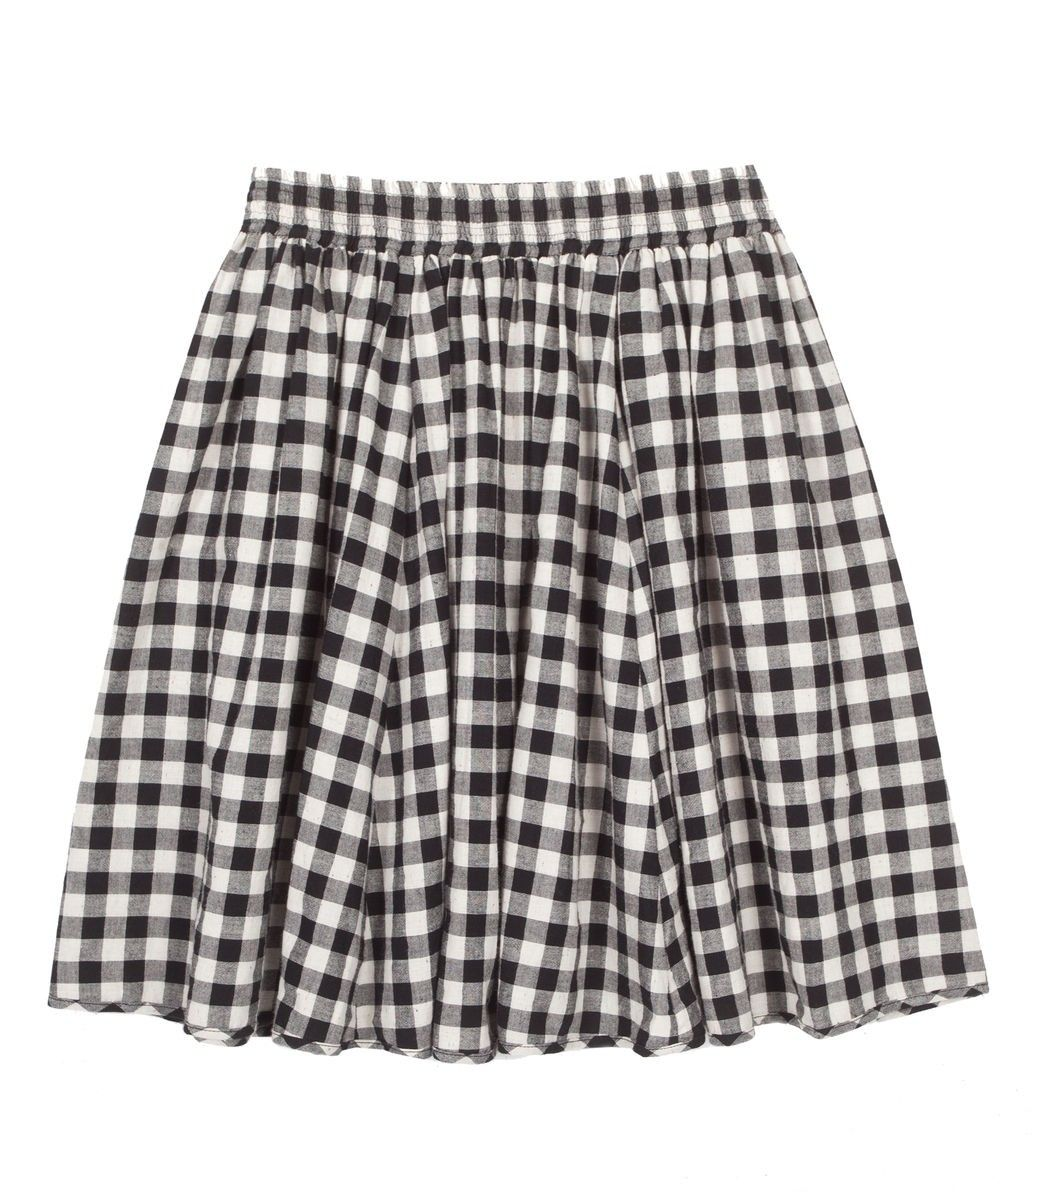 64db5fad2a checkity check yourself skirt from gorman $84.50 | Sweet Threads ...